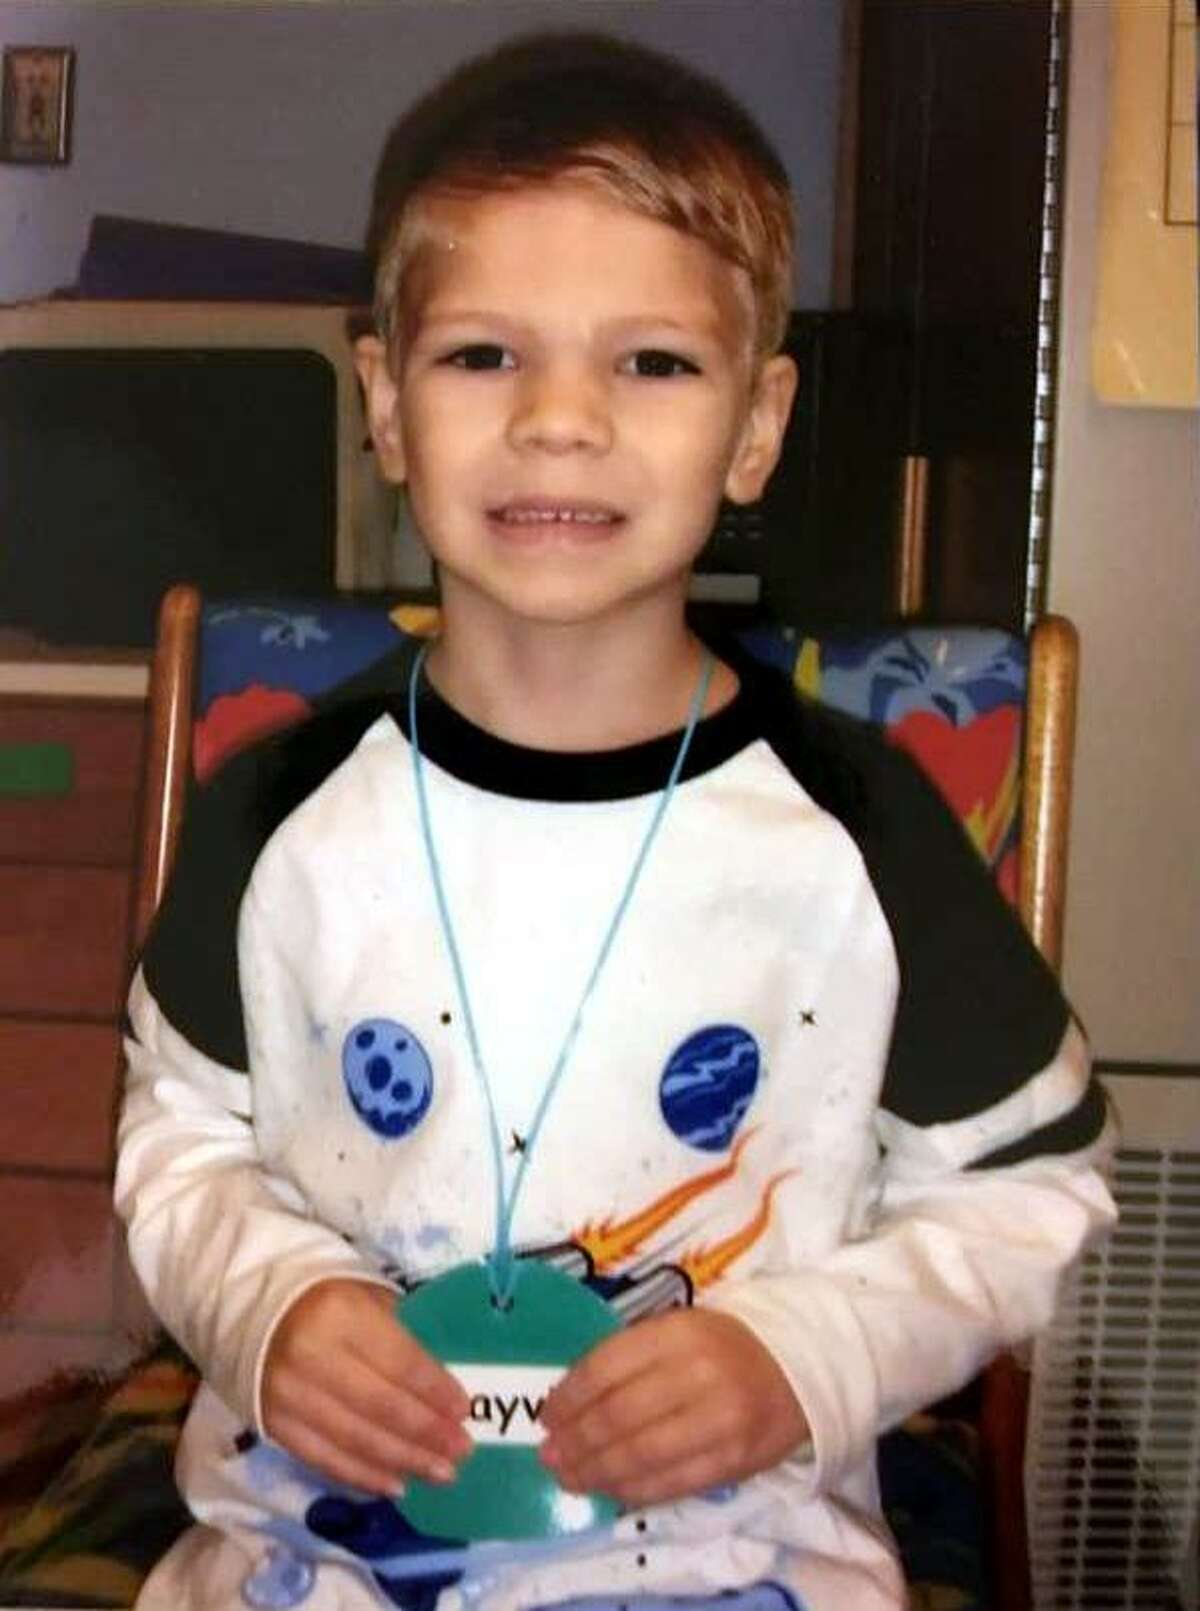 Six-year-old Dayvid Pakko's body was found Tuesday in a Lynnewood, Wash., dumpster.